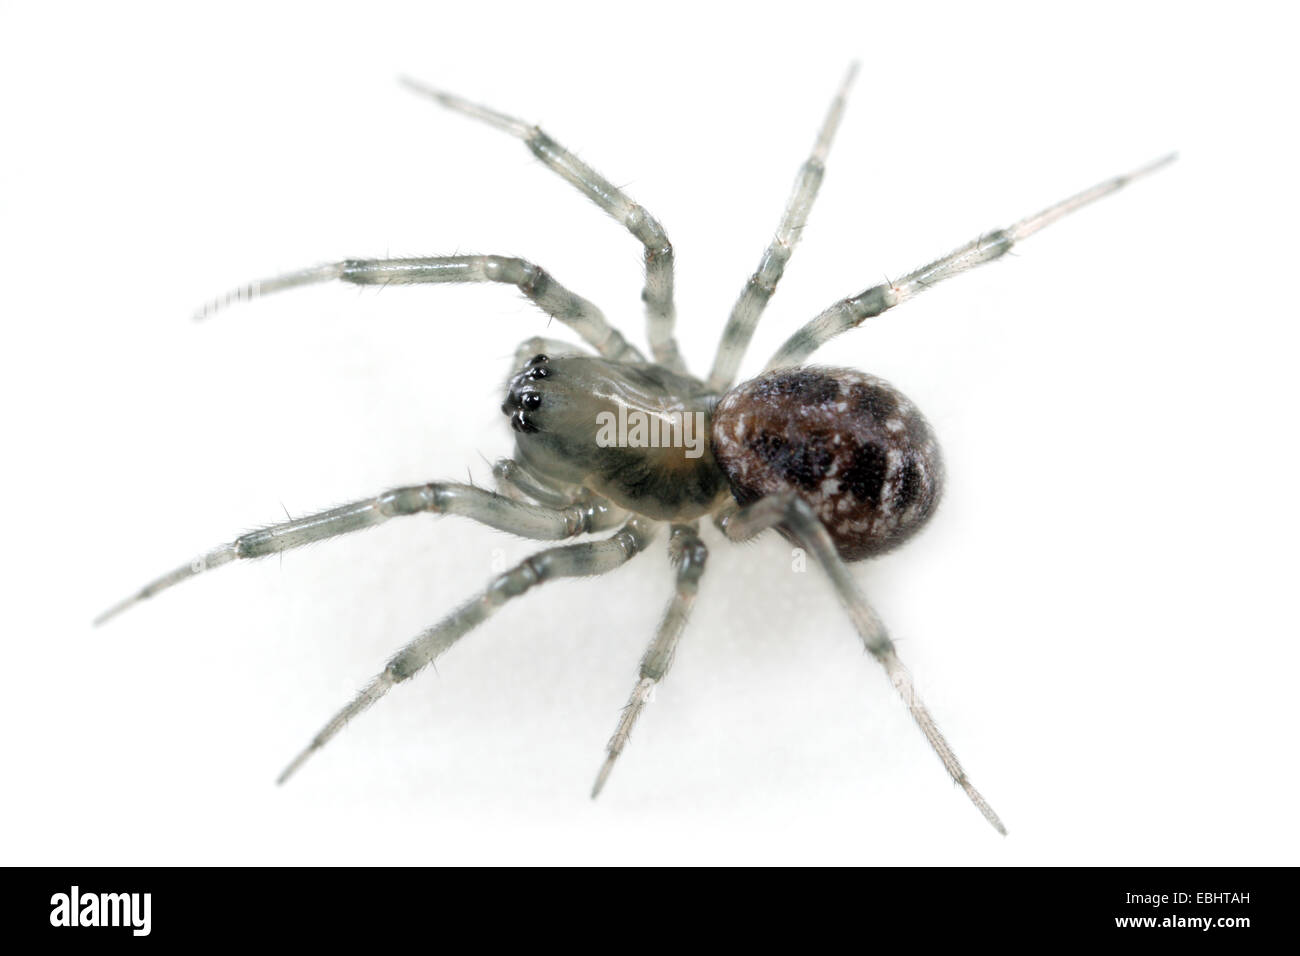 A female sheetweb weaver spider (Tapinopa longidens) on white background. The sheetweb weavers are part of the famliy - Stock Image